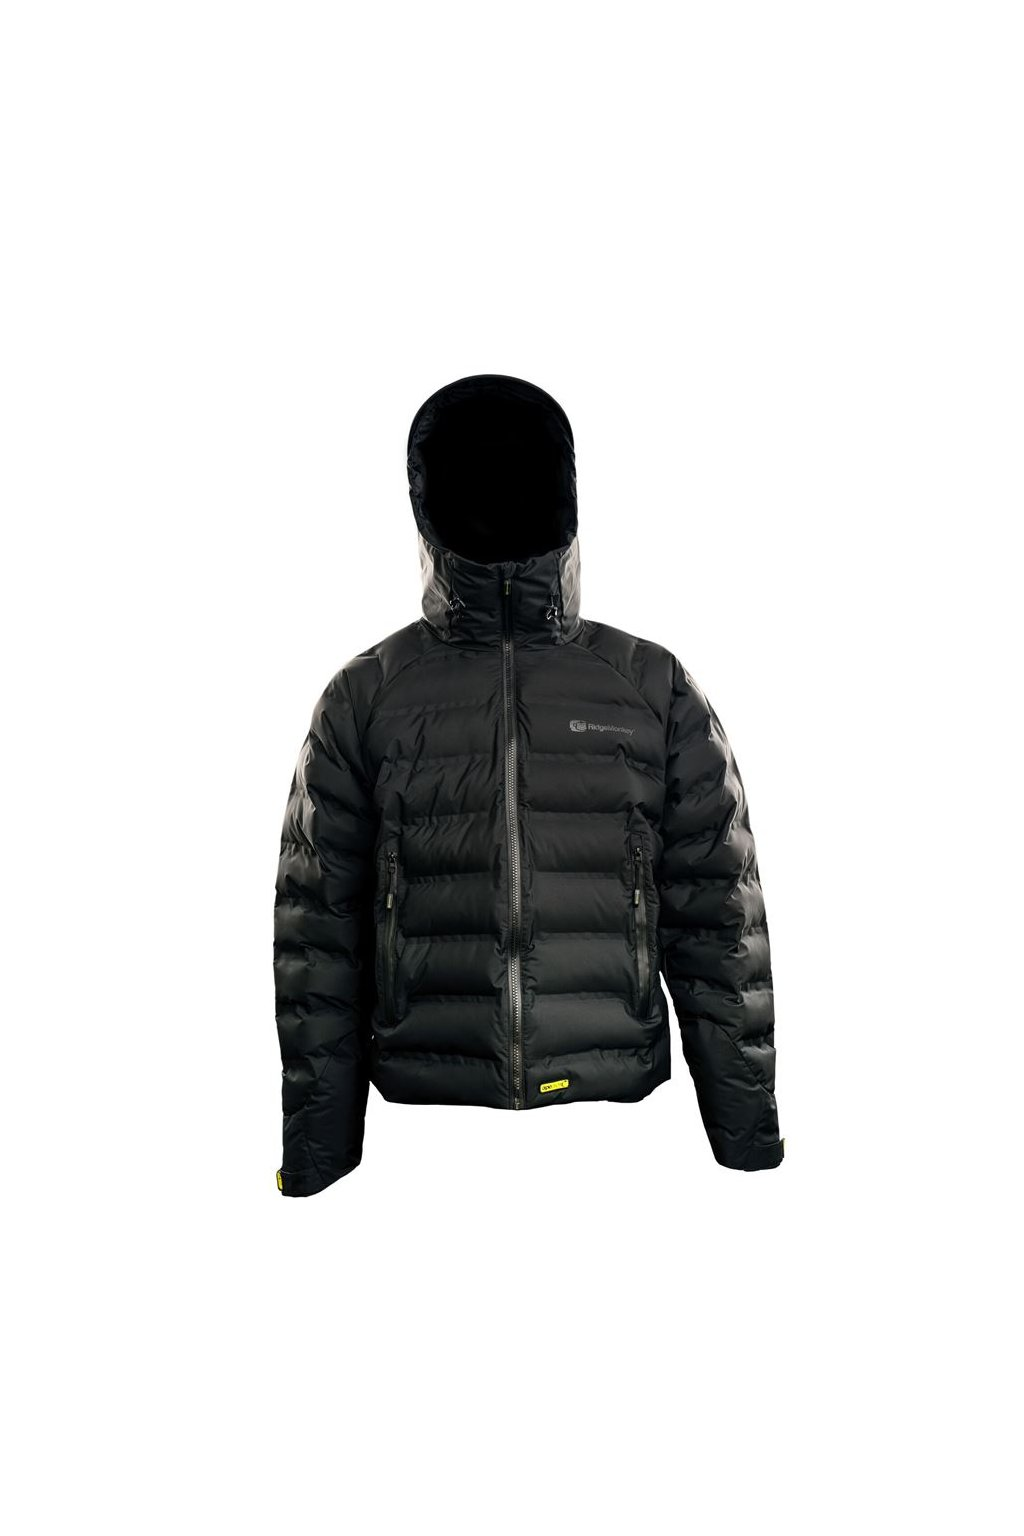 RidgeMonkey Bunda APEarel Dropback K2 Waterproof Coat Black